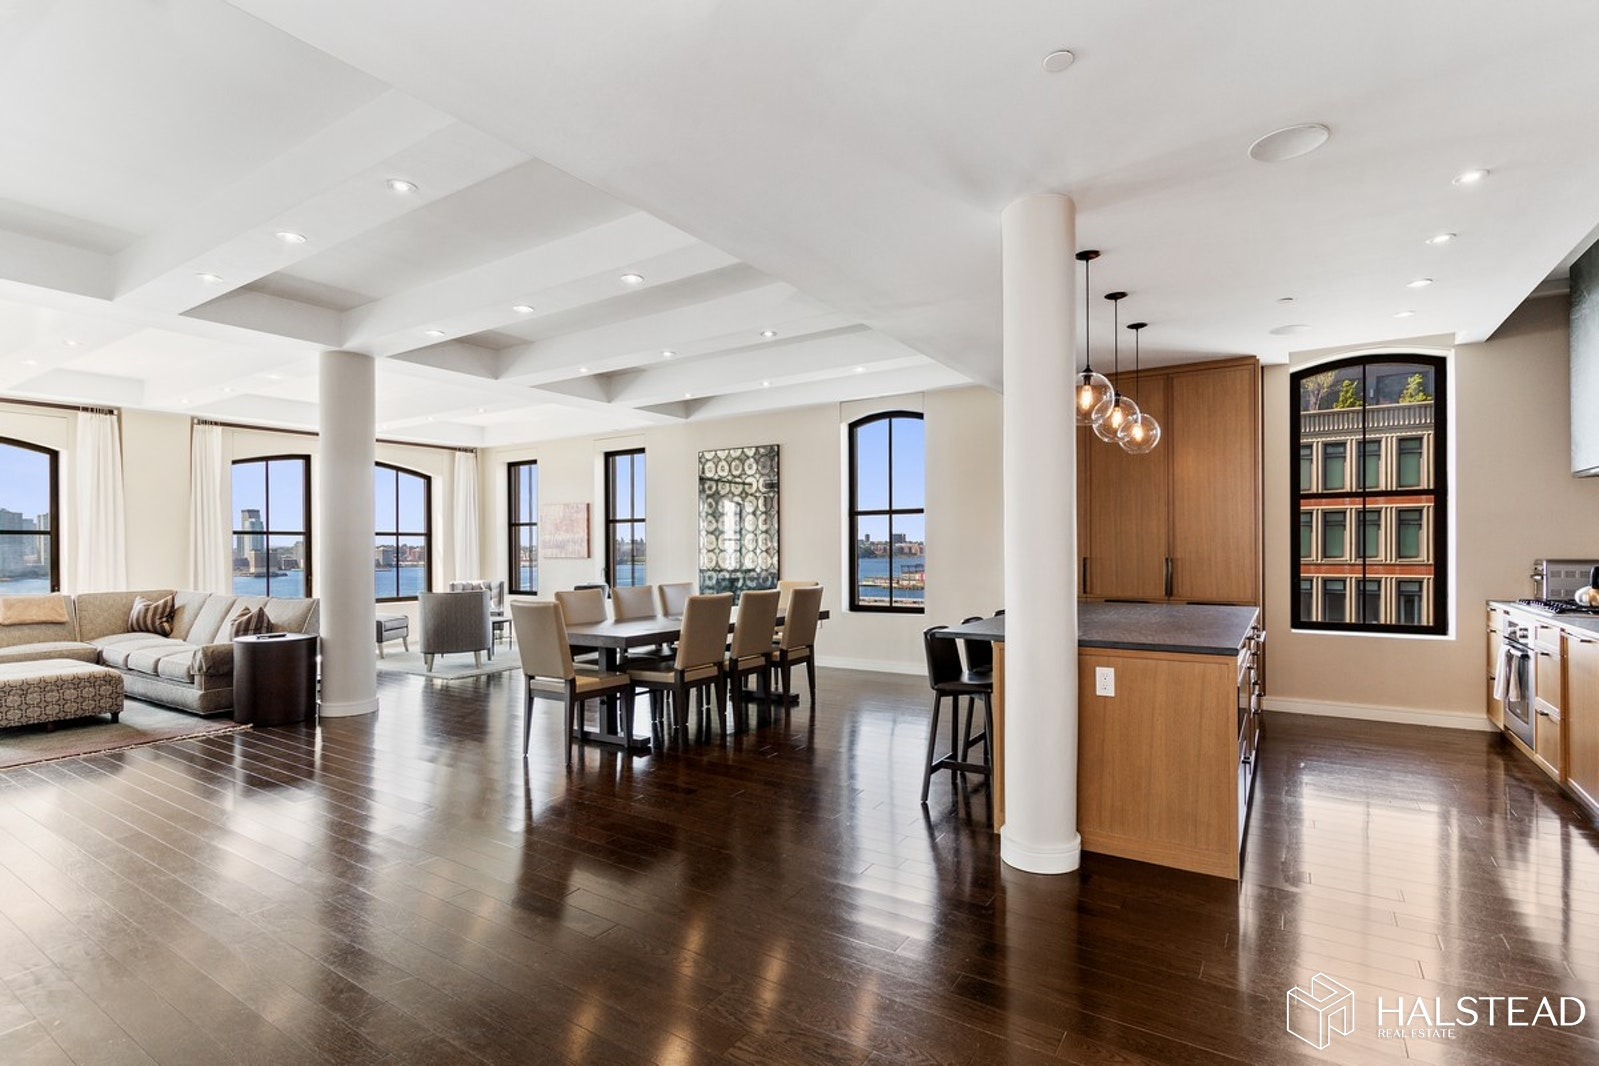 This stunning residence is perched high above the Hudson River and features a sun-drenched Living/Dining room with high ceilings, gorgeous wide-plank flooring, and spectacular sunset views from a wall of enormous picture windows. The state-of-the-art chef's kitchen with center-island is open to the entertaining space and features custom Poggenphol cabinetry and top-of-the-line Bosch and Subzero appliances. At one end of this magnificent home, you'll find the sumptuous Master Bedroom suite, a light-filled sanctuary facing the Hudson River offering a massive walk-in closet and a gorgeous 5-fixture en-suite bathroom replete with glass-enclosed rain shower and deep soaking tub. At the opposite end of the home, a long hallway separates public from private and leads to 4 generous-sized guest bedrooms, a large Media room, and a Den/Playroom. Additional amenities include multi-zoned central air-conditioning, a separate laundry room, abundant storage space, and a tasteful powder room for guests. All this, in TriBeCa's condominium conversion featuring a 24-hour doorman, live-in superintendent, dramatic lobby with separate library, state-of-the-art fitness center, 61-foot indoor lap pool, children's playroom, and spectacular roof top garden with panoramic city and river views. Enjoy absolute luxury right across from the Hudson Waterfront Park!